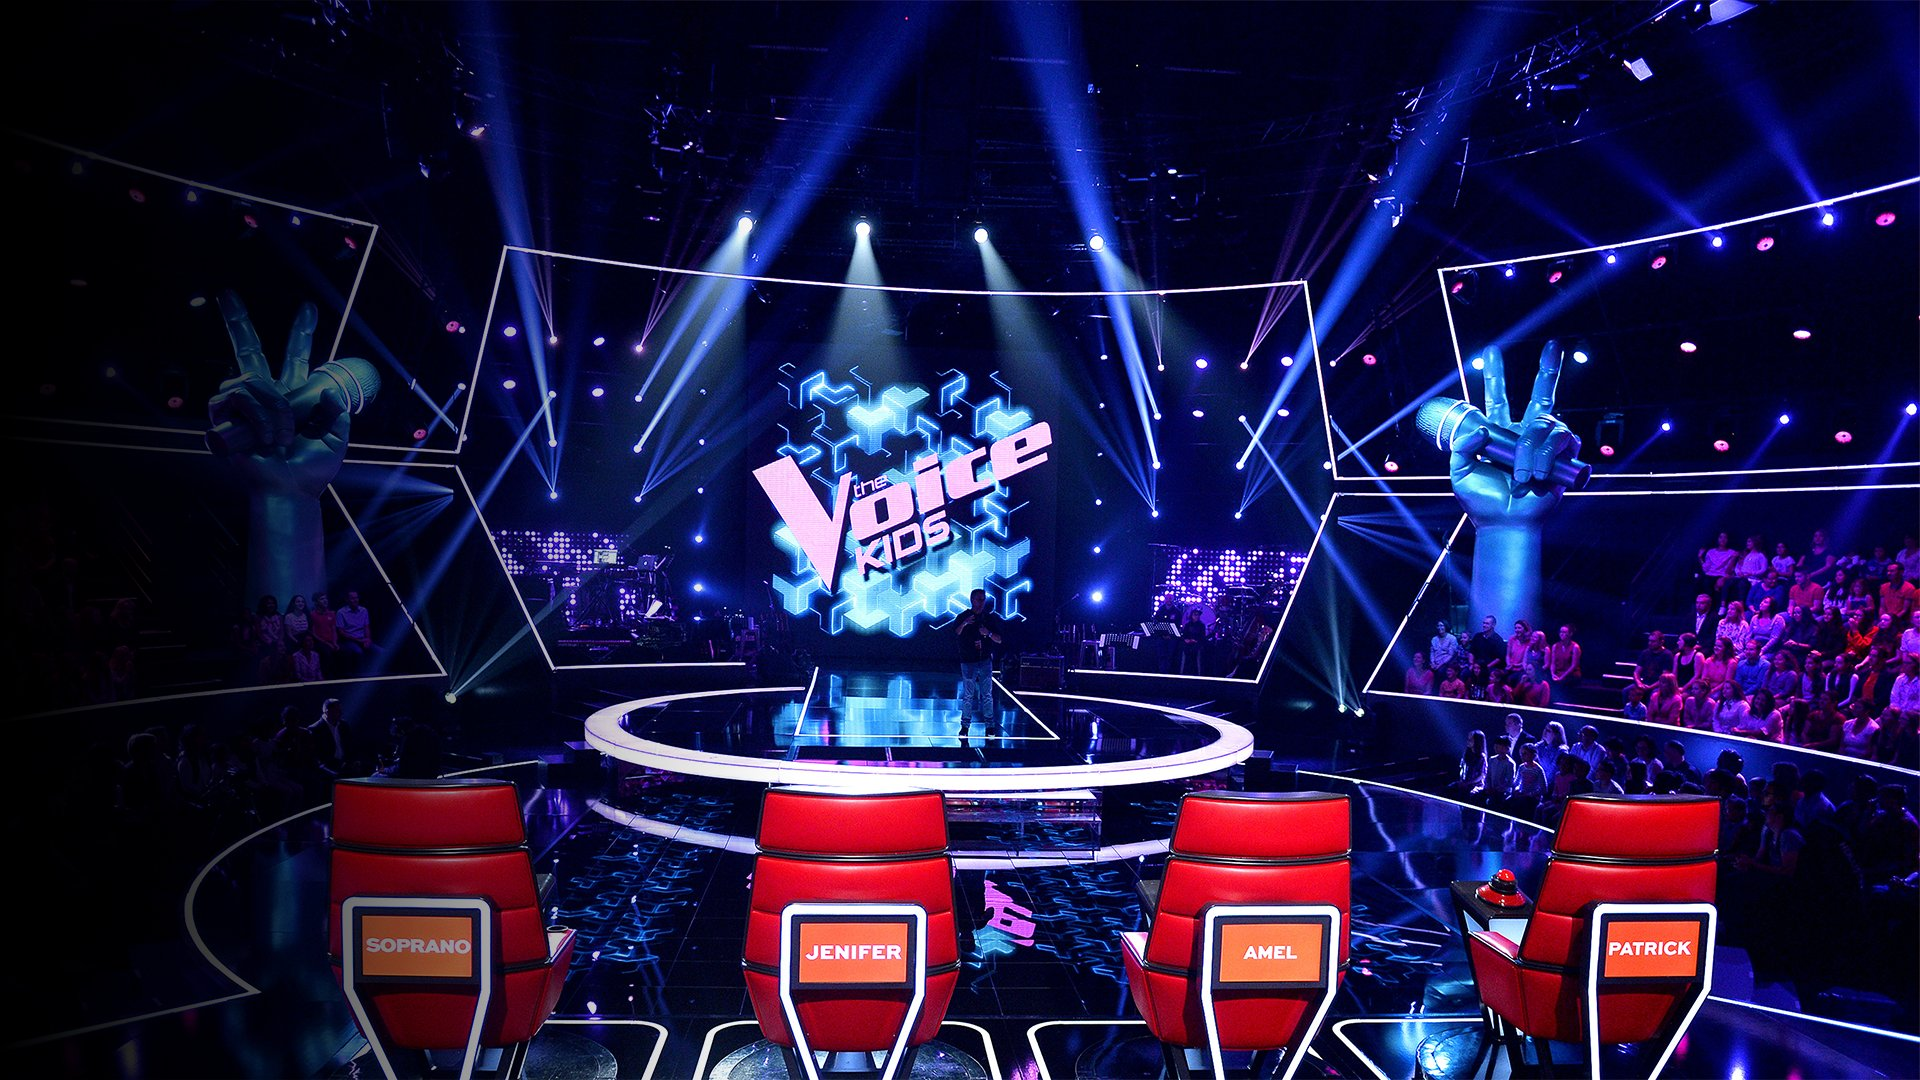 fond The Voice saison 02 - We Are The World (USA for Africa) (saison 02)